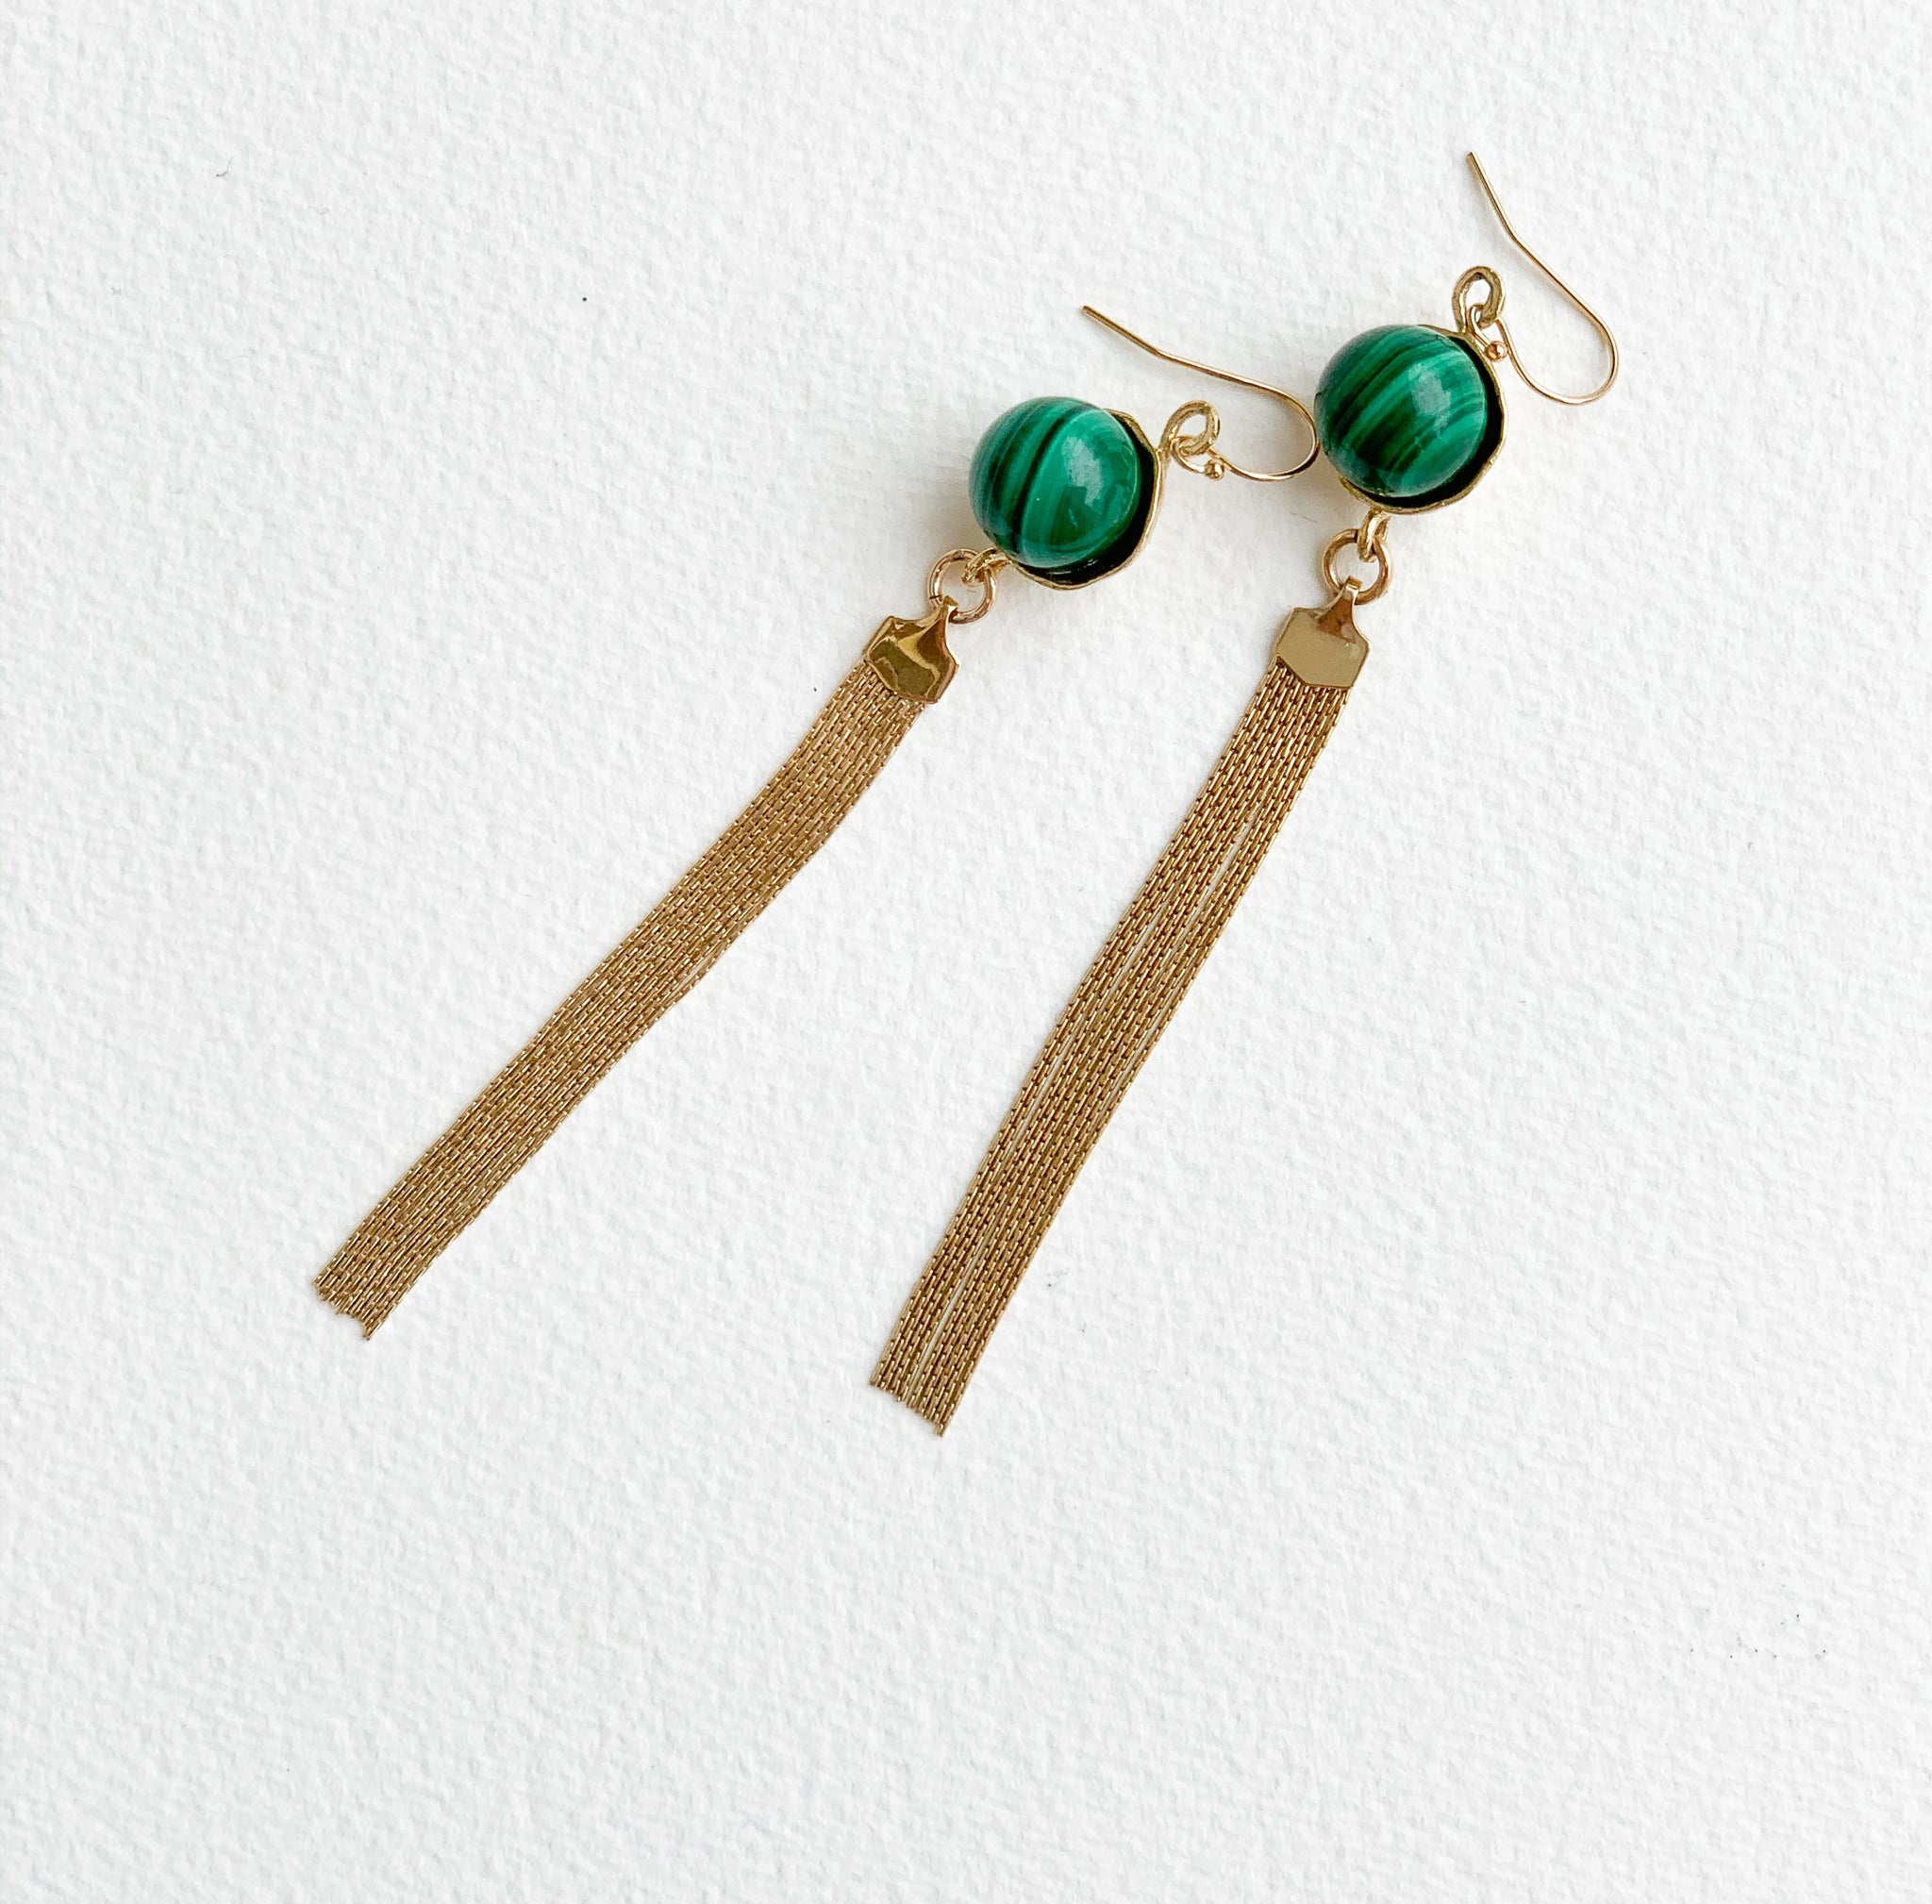 Melissa De La Fuente Fifi Earrings